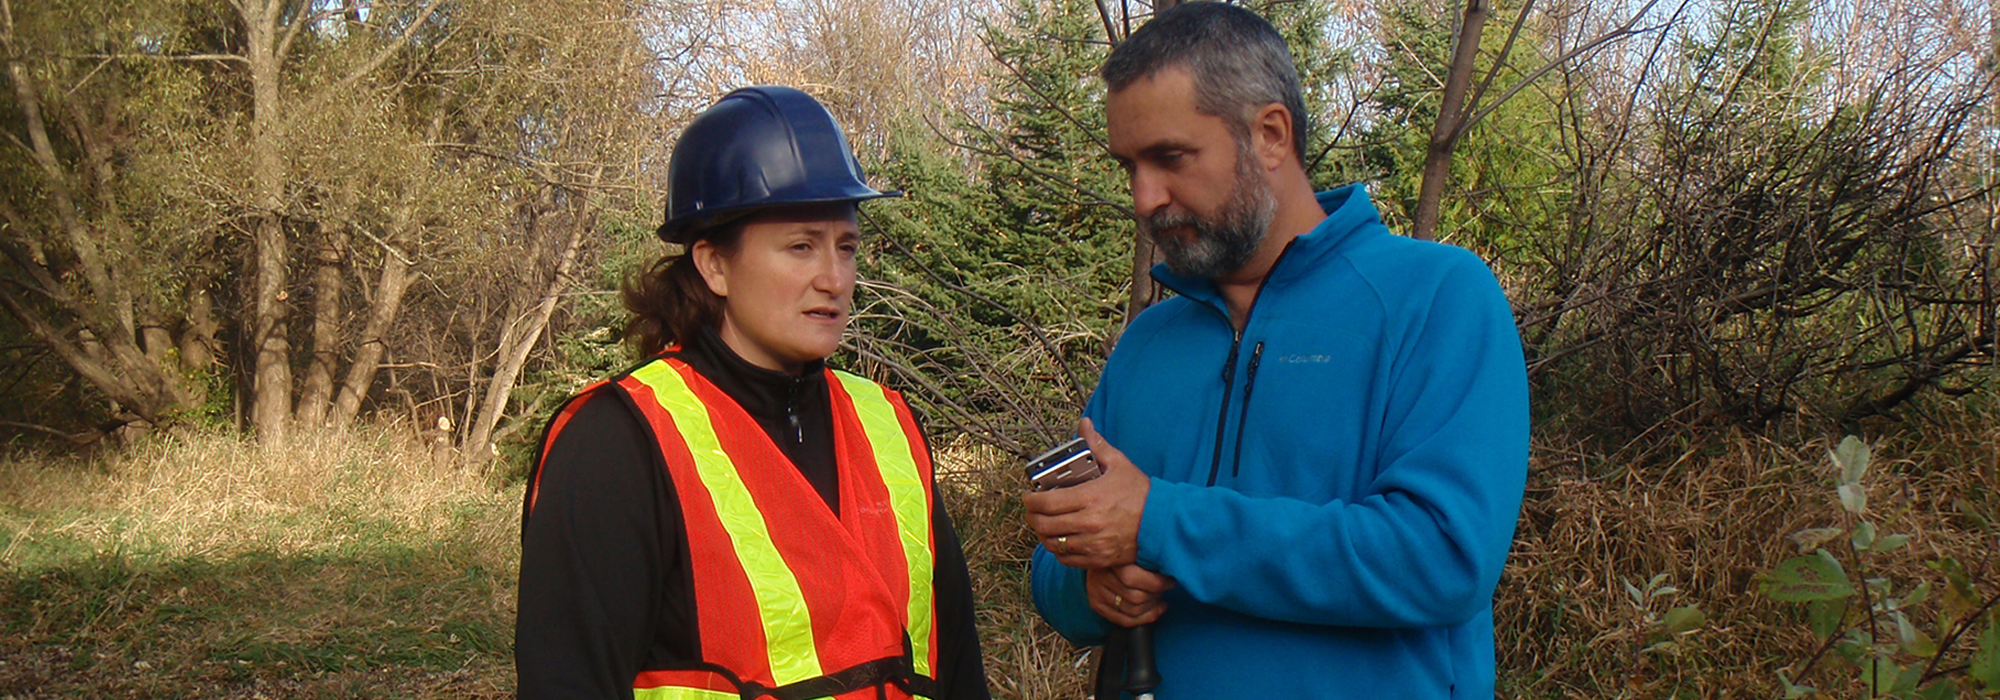 Lawrence_interviewing_Rideau_Conservation_Biologist